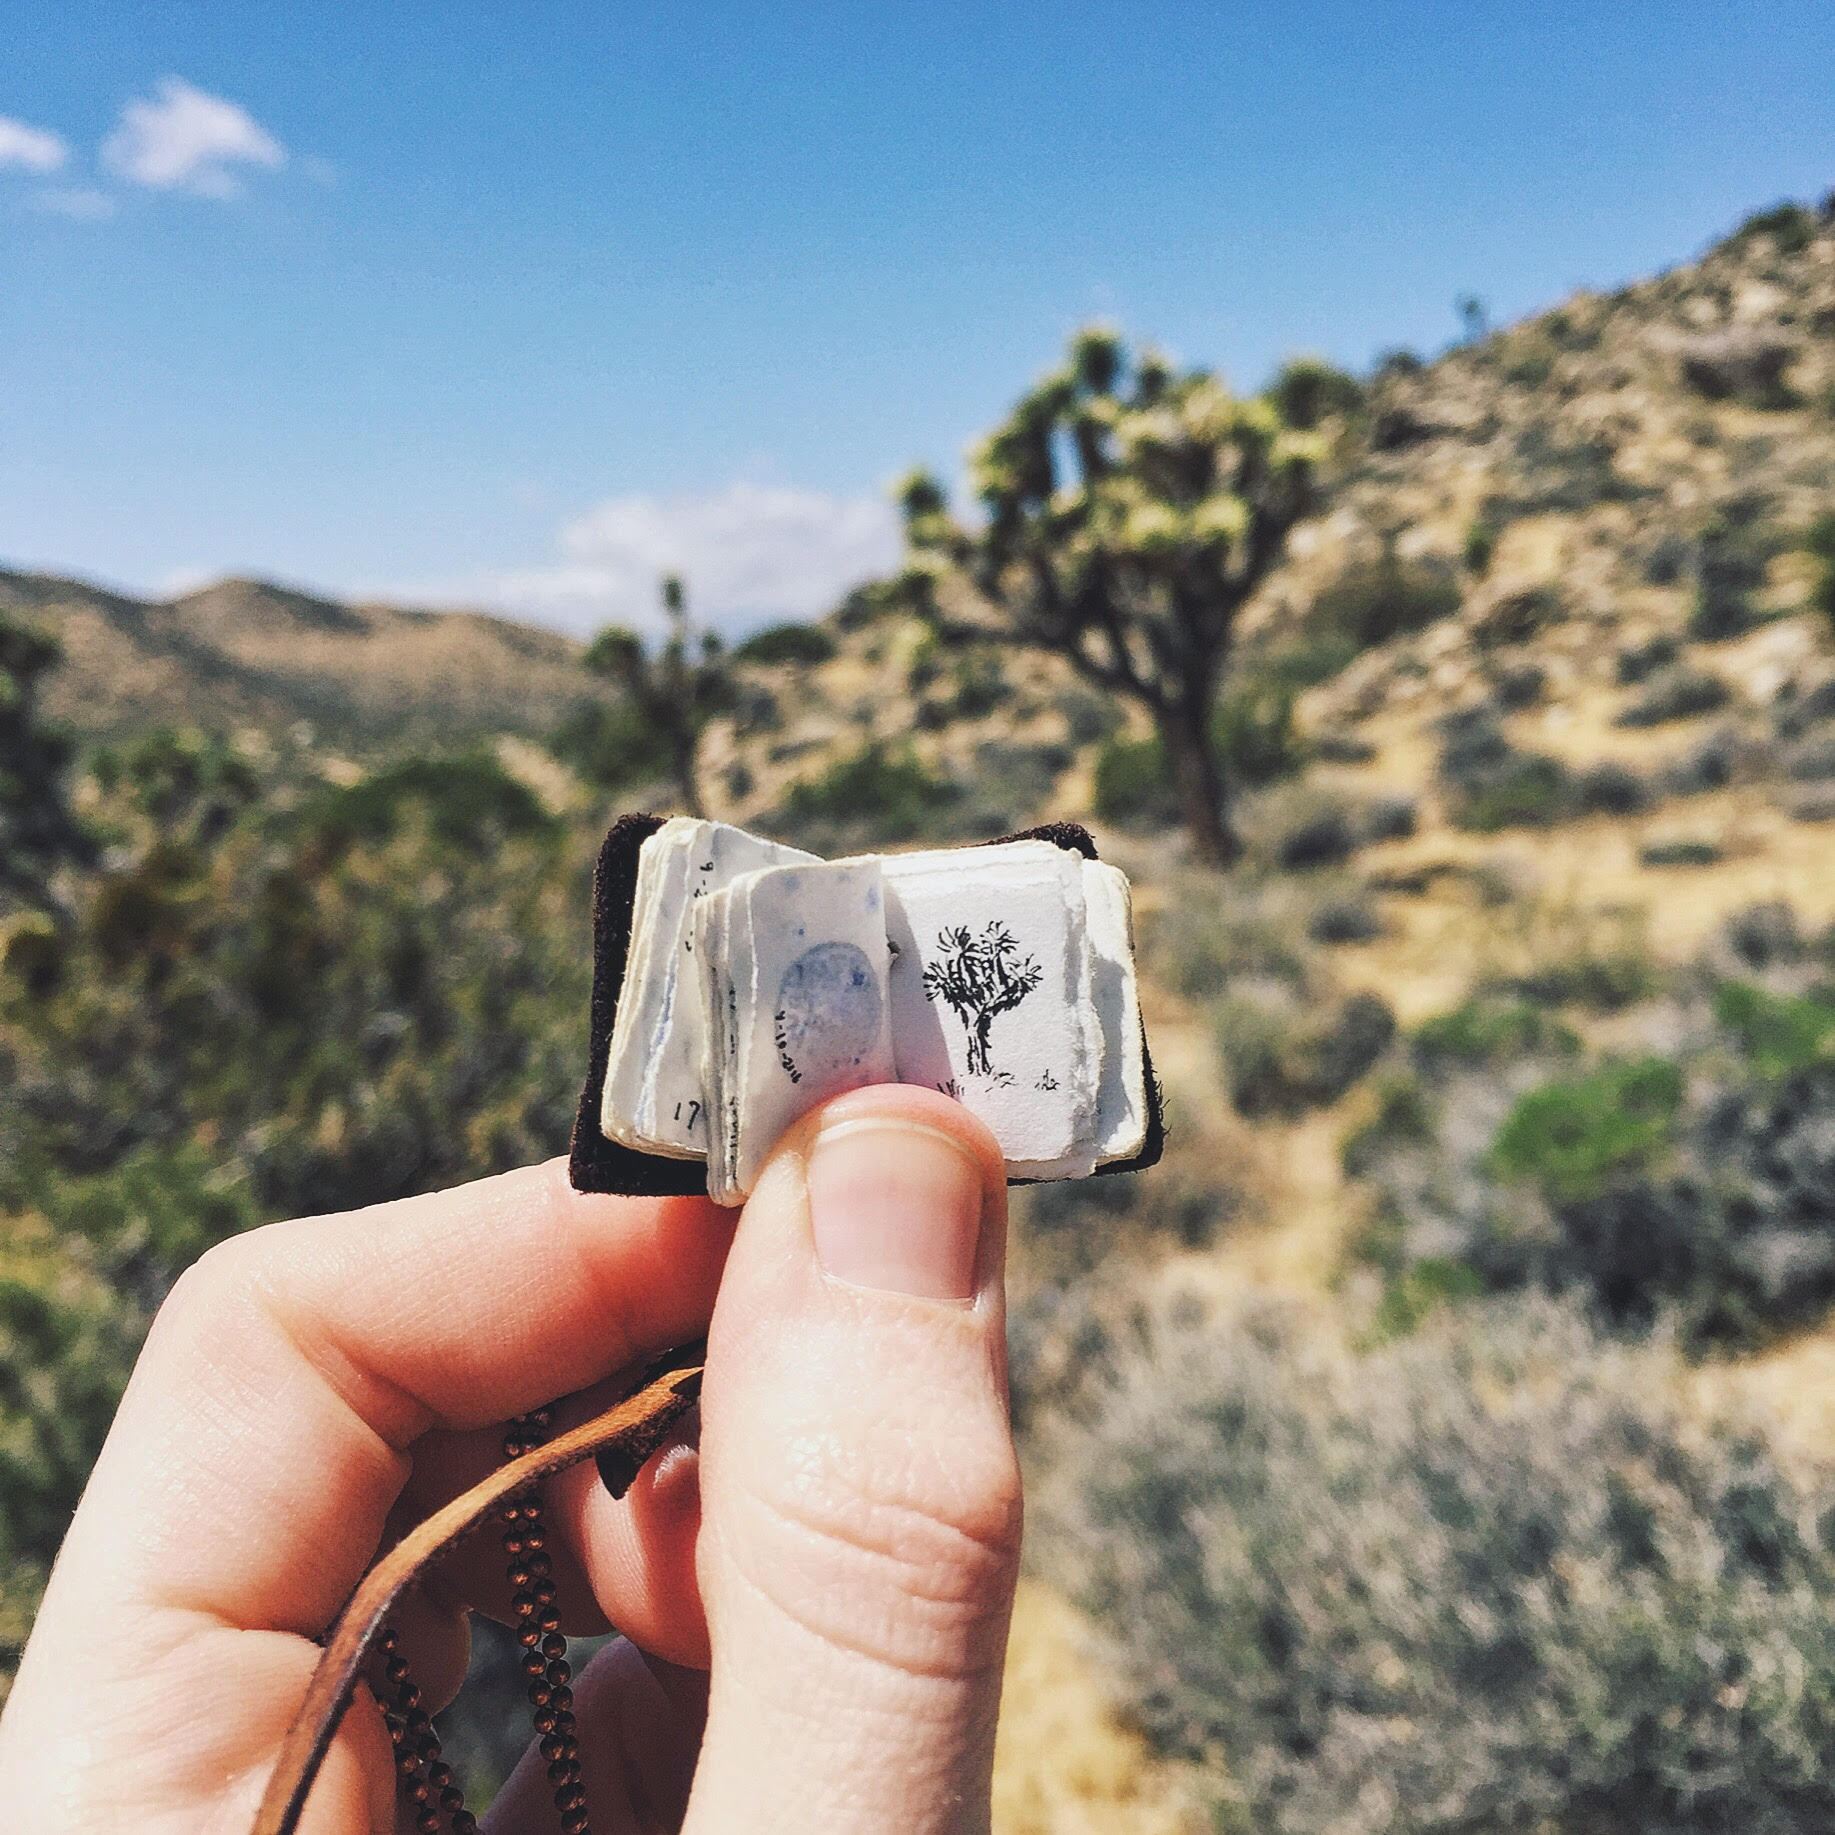 A quick and tiny trail sketch at Joshua Tree National Park